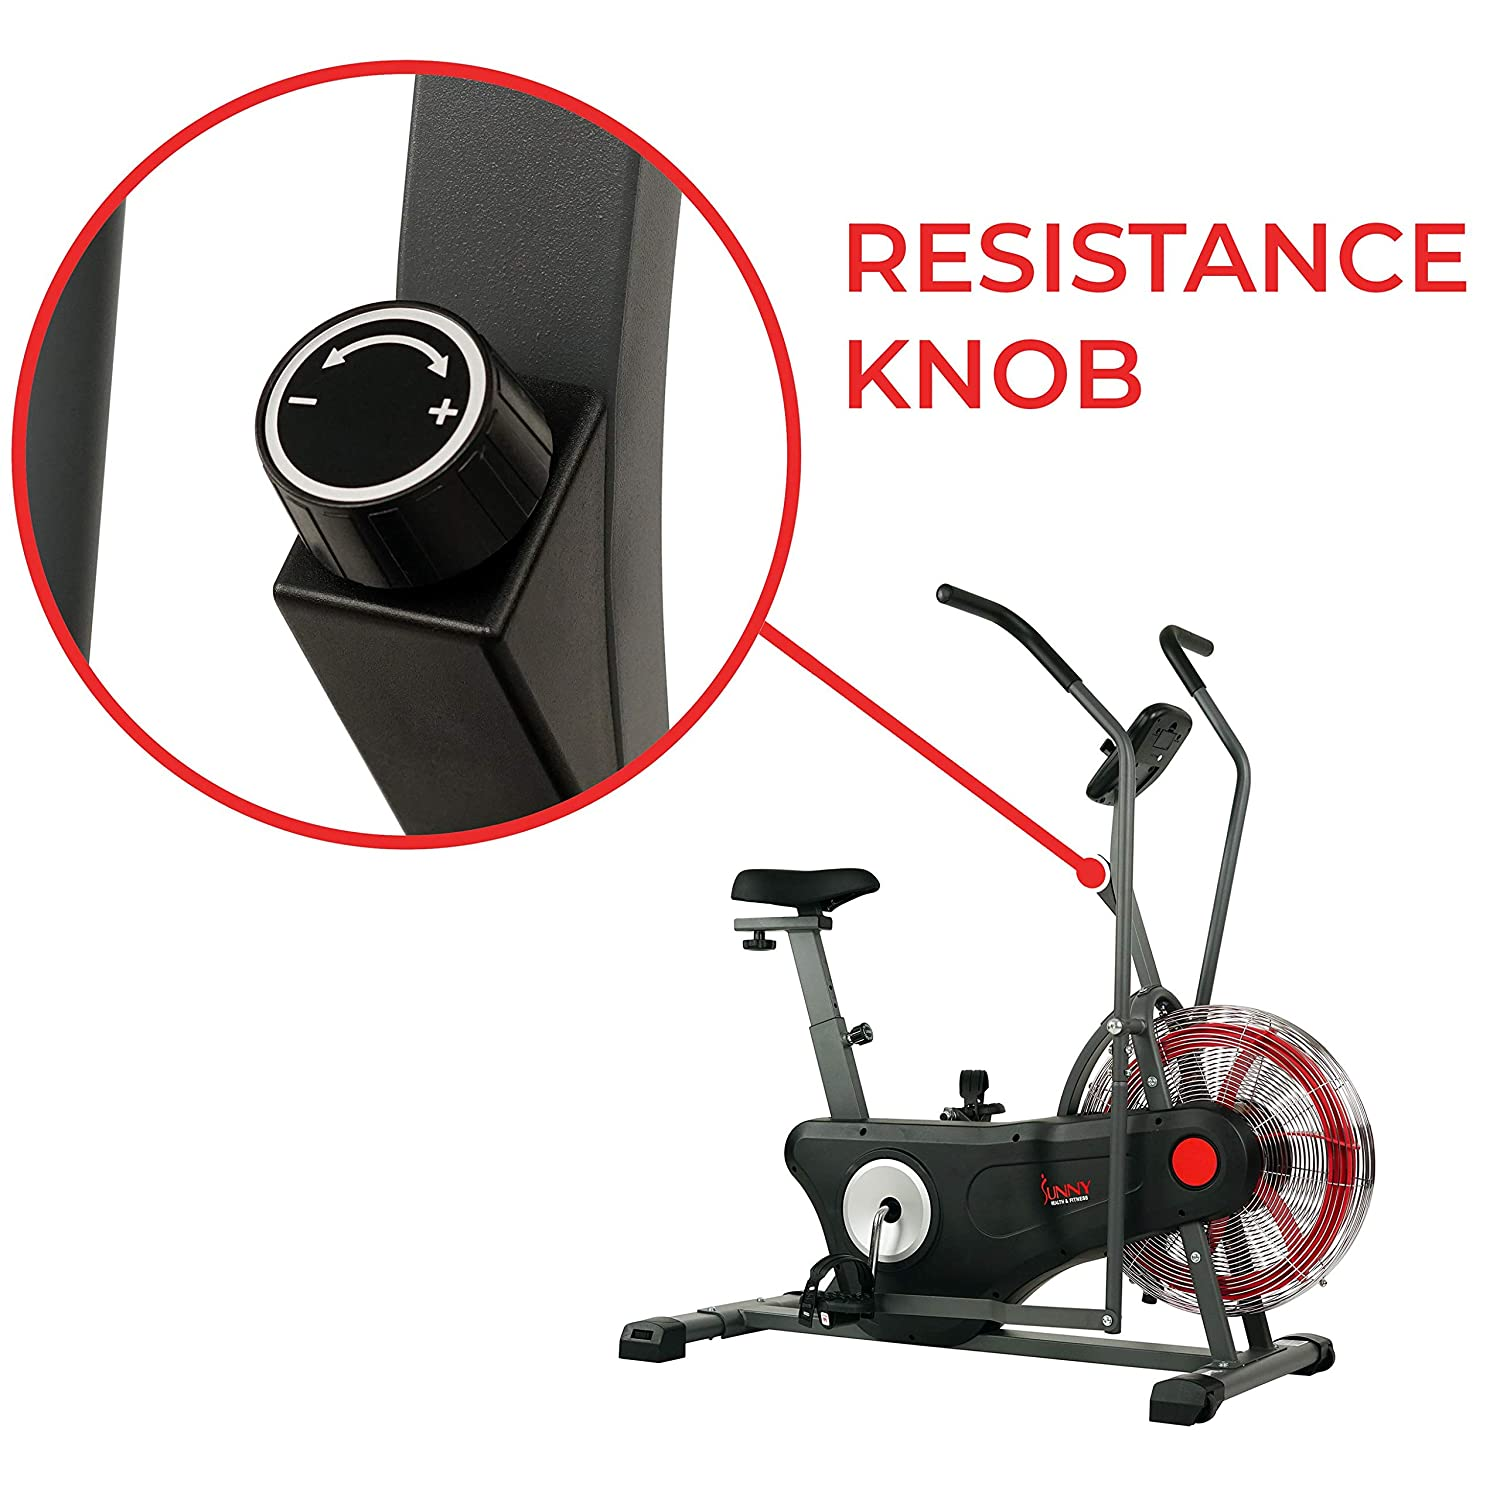 Amazon.com : Sunny Health & Fitness Air Bike Trainer, Fan Exercise Bike with Unlimited Resistance, Cross Training for Home - SF-B2640 : Sports & Outdoors